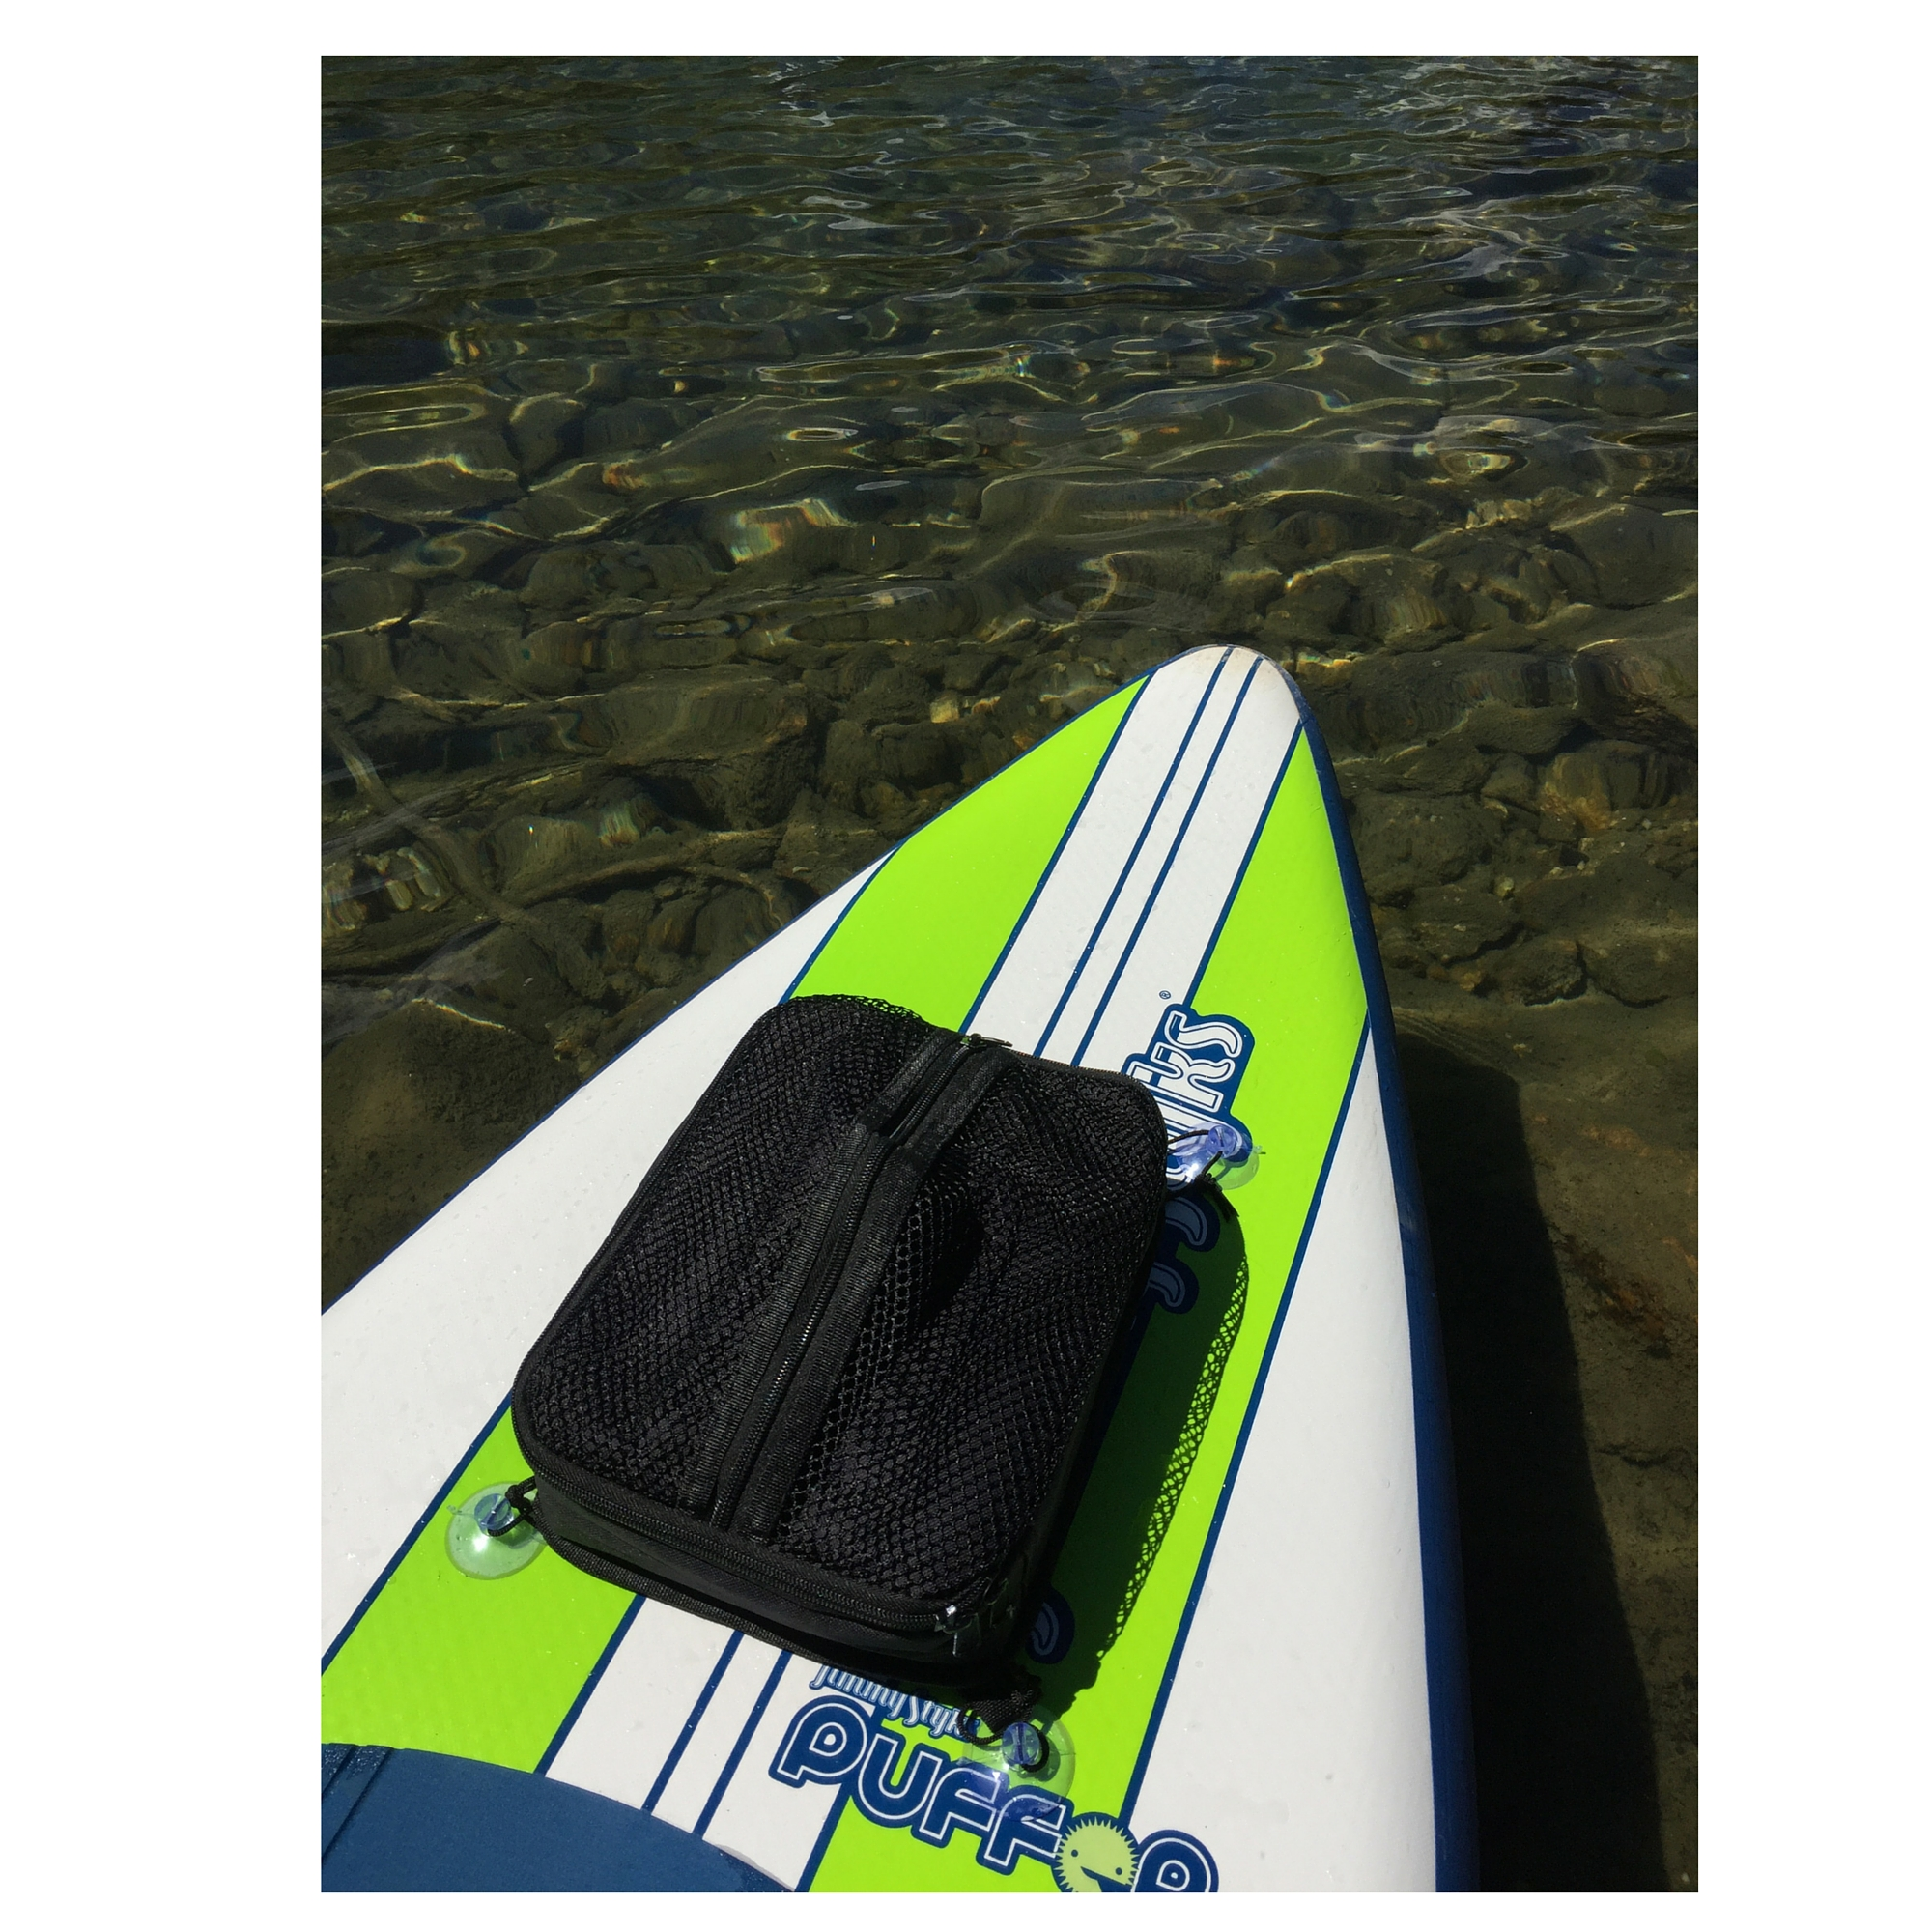 Paddle Board Cooler & Mesh Bag In One By Paddle Board Accessories Company (Black) by